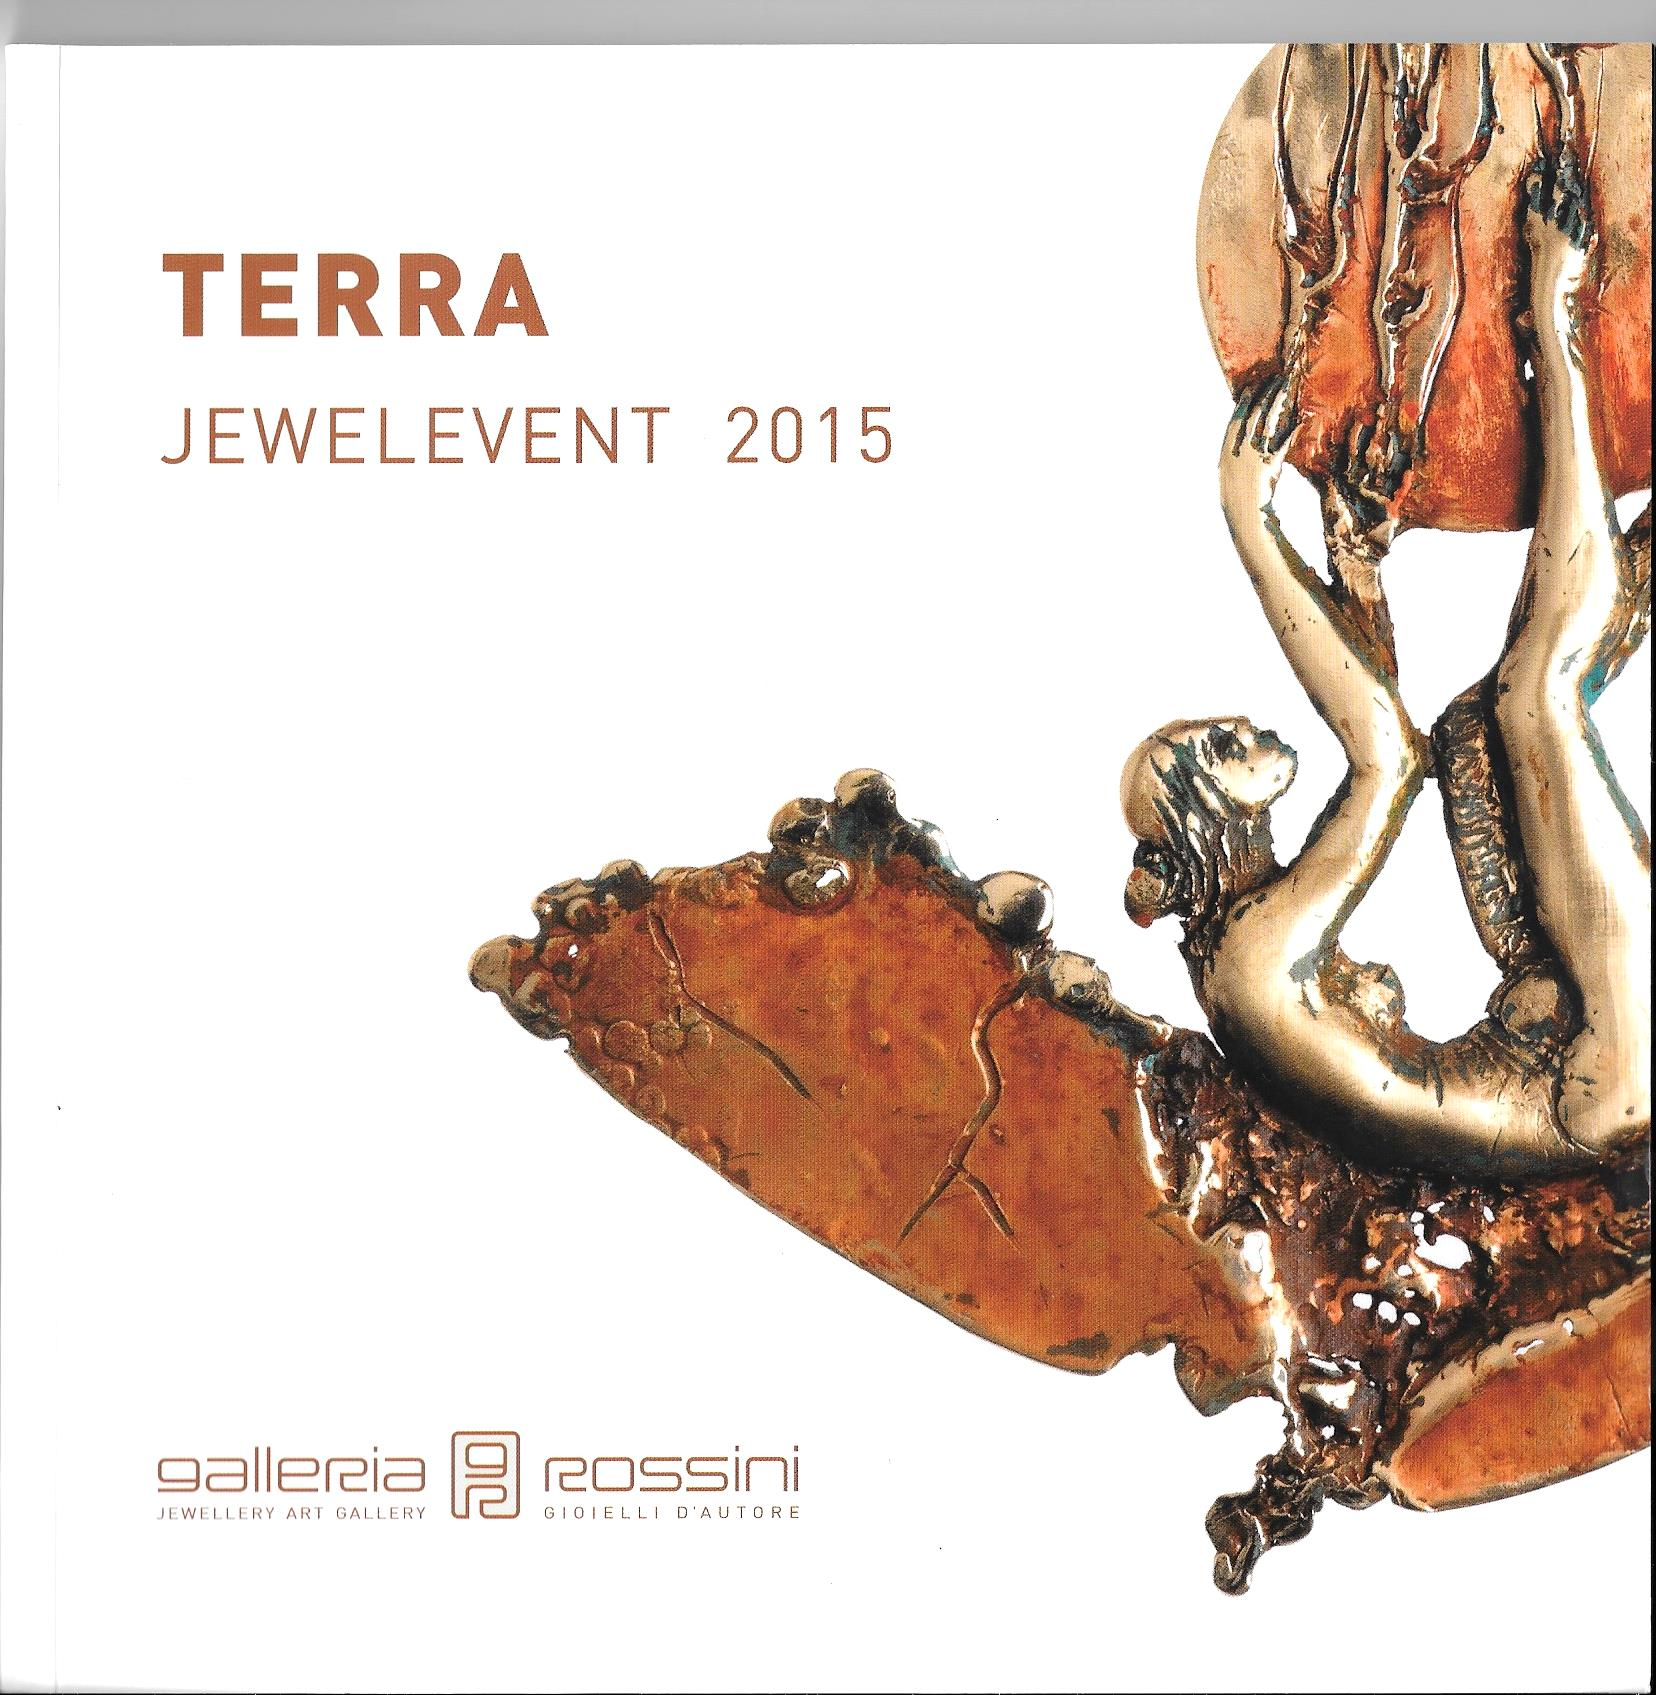 Jewelevent 2015 – Terra – Galleria Rossini Milano